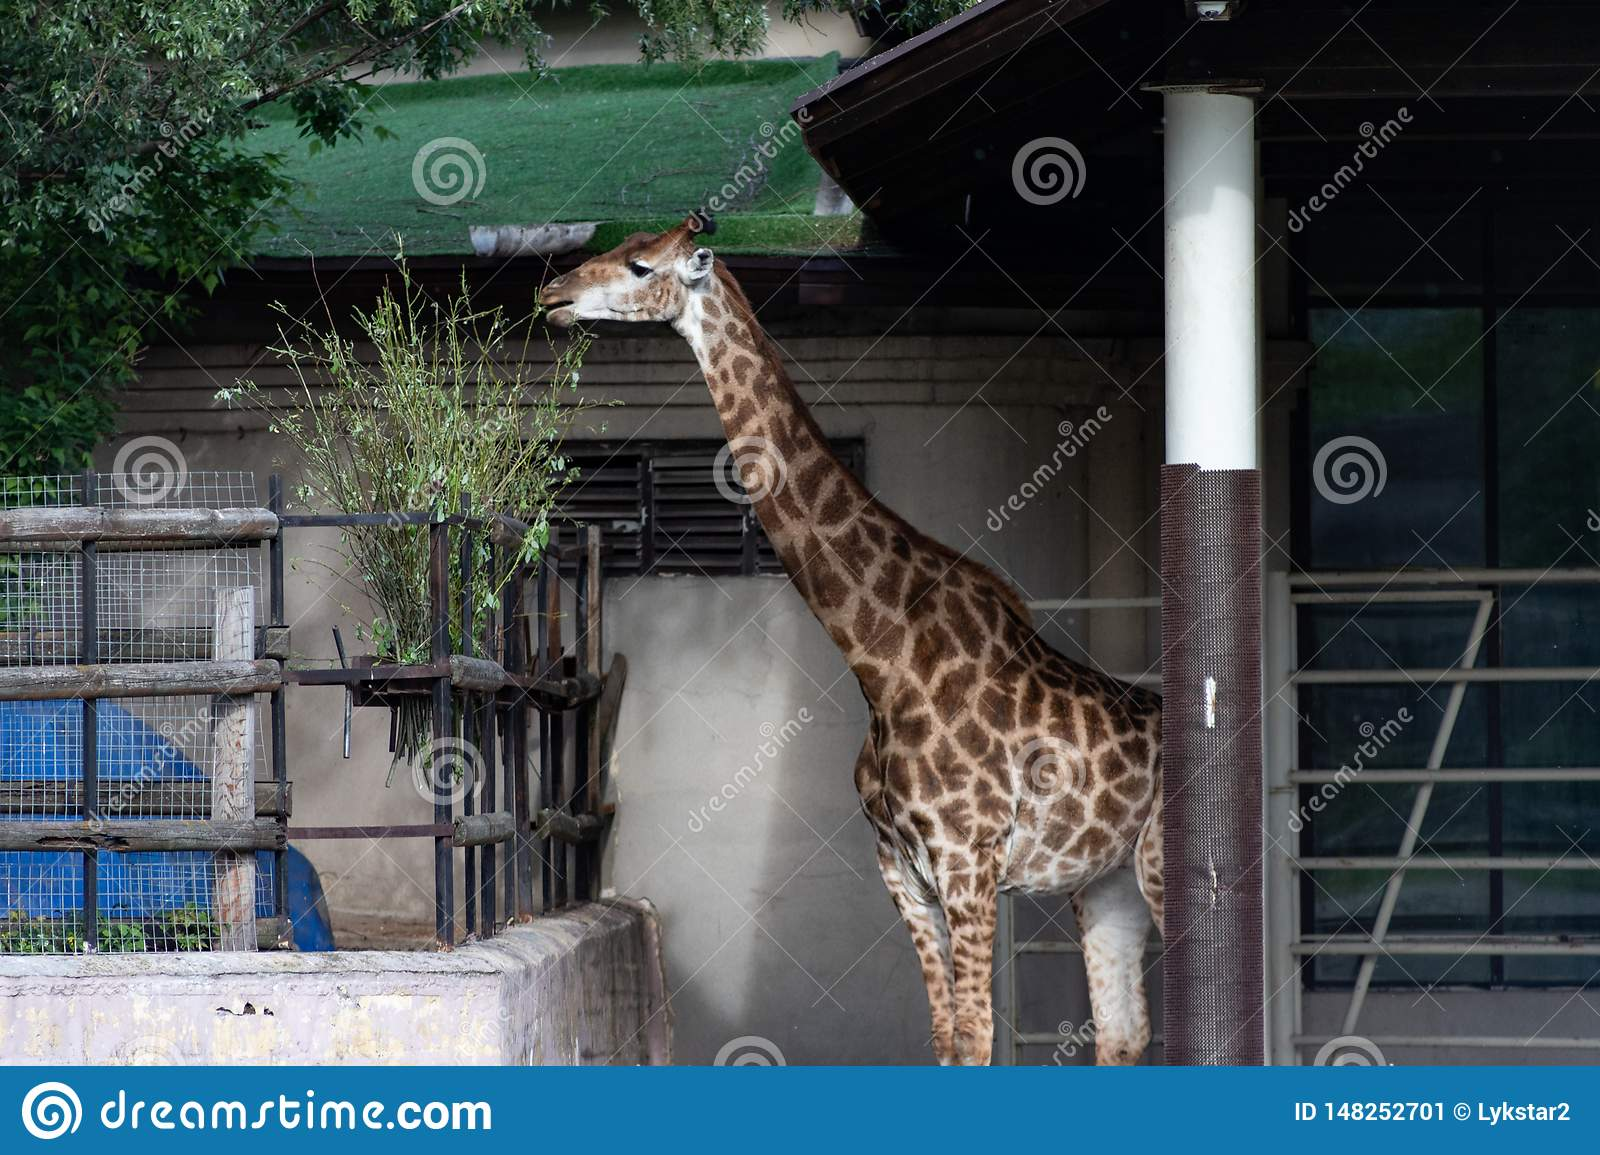 The giraffe Giraffa camelopardalis is an African even-toed ungulate mammal, the tallest of all extant land-living animal species,